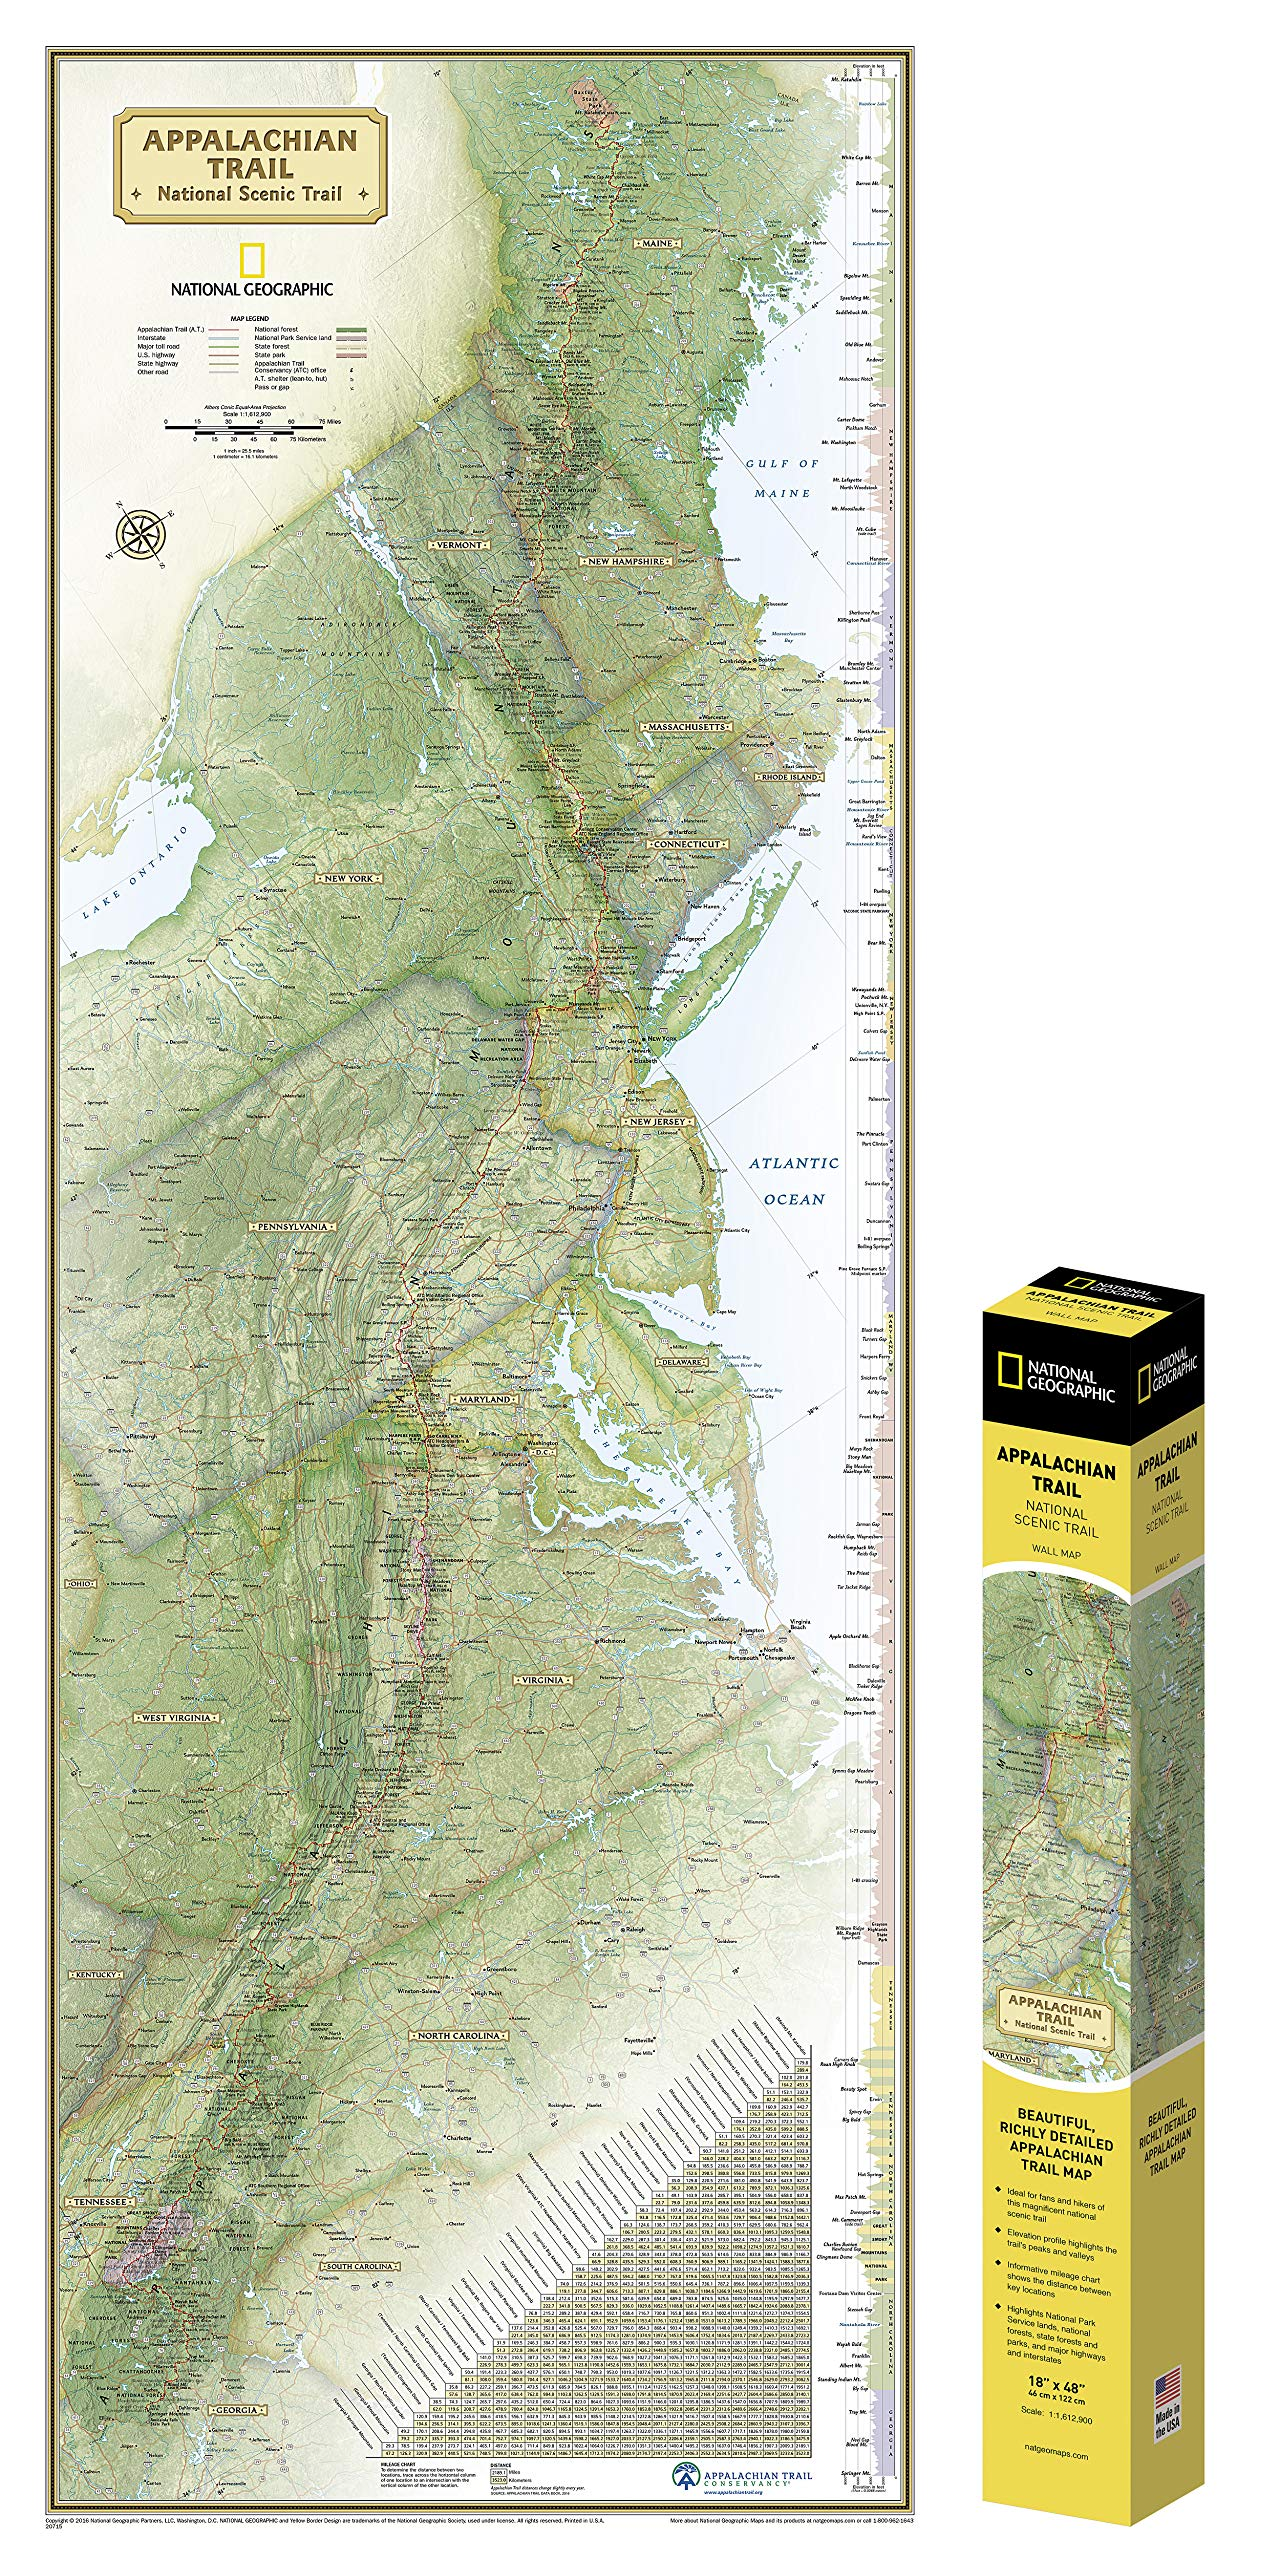 National Geographic: Appalachian Trail Wall Map in gift box ... on great smoky mountains national park, international appalachian trail, shenandoah national park, hiking appalachian trail books, hiking yellowstone map, hiking john muir trail map, hiking blue ridge parkway map, mount rogers, hiking cades cove map, skyline drive, blood mountain, hiking white mountains map, continental divide trail, springer mountain, brasstown bald, mount katahdin, hiking georgia map, appalachian mountains, great smoky mountains, hiking pacific crest trail map, long trail, hiking the appalachian trail, hiking vermont map, hiking clingmans dome map, hiking tuscarora trail map, bill bryson, hiking foothills trail map, north country trail, allegheny trail map, appalachian trail conservancy, pacific crest trail, hiking new england map, blue ridge mountains, mount mitchell, hiking trail shoes, hiking the appalachian mountains, clingmans dome, hiking shenandoah national park map,